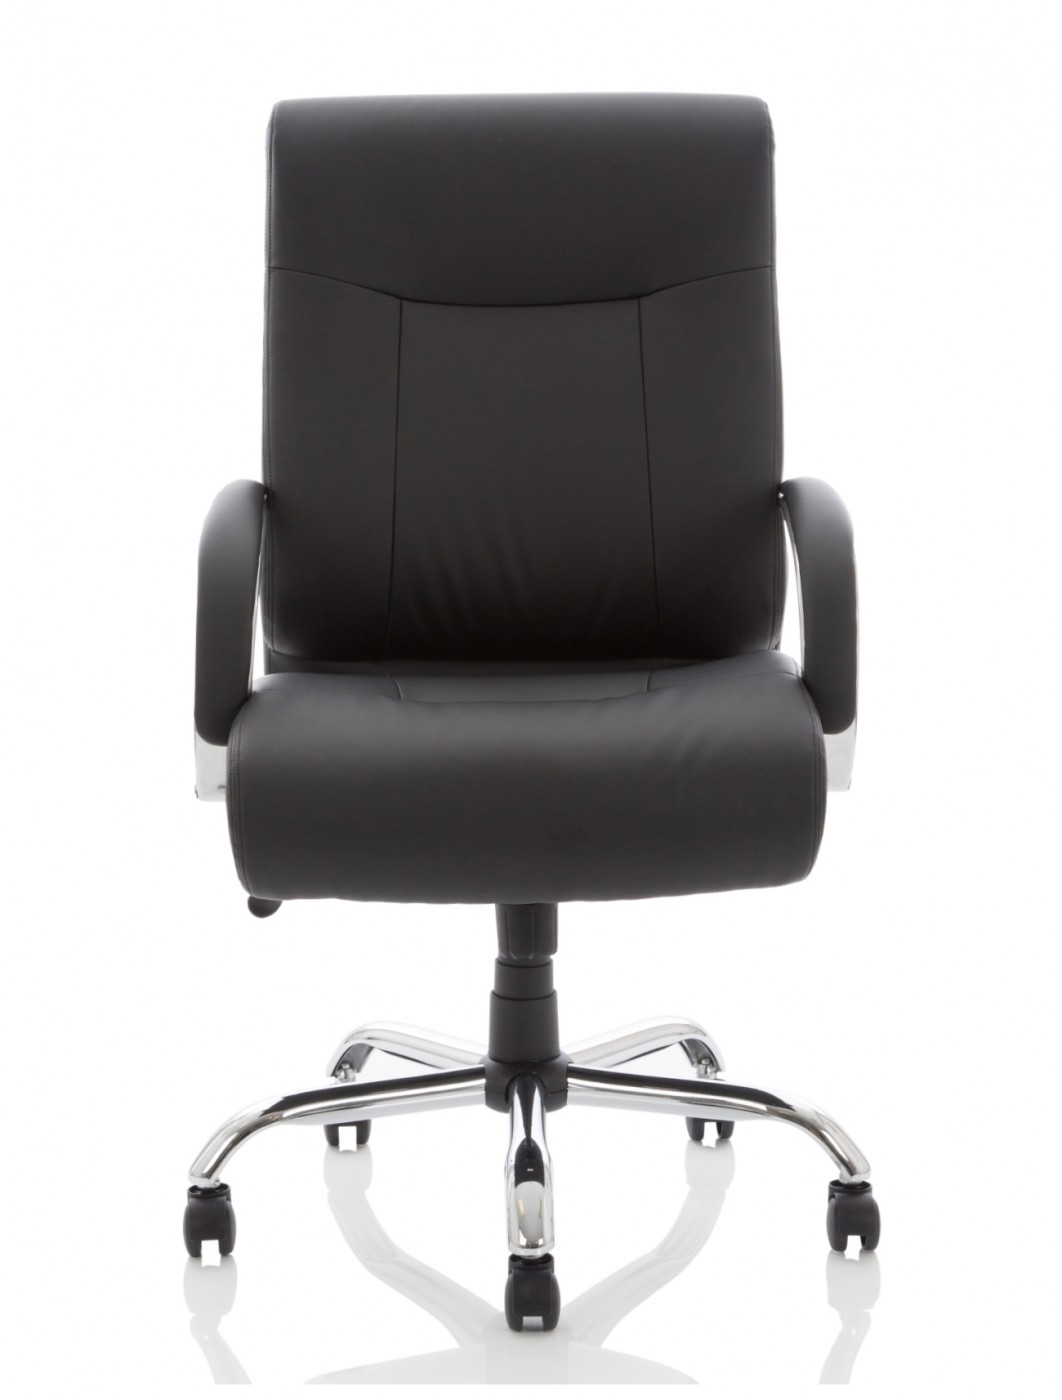 Heavy Duty Office Chair Office Chairs Drayton Hd Super Heavy Duty Executive